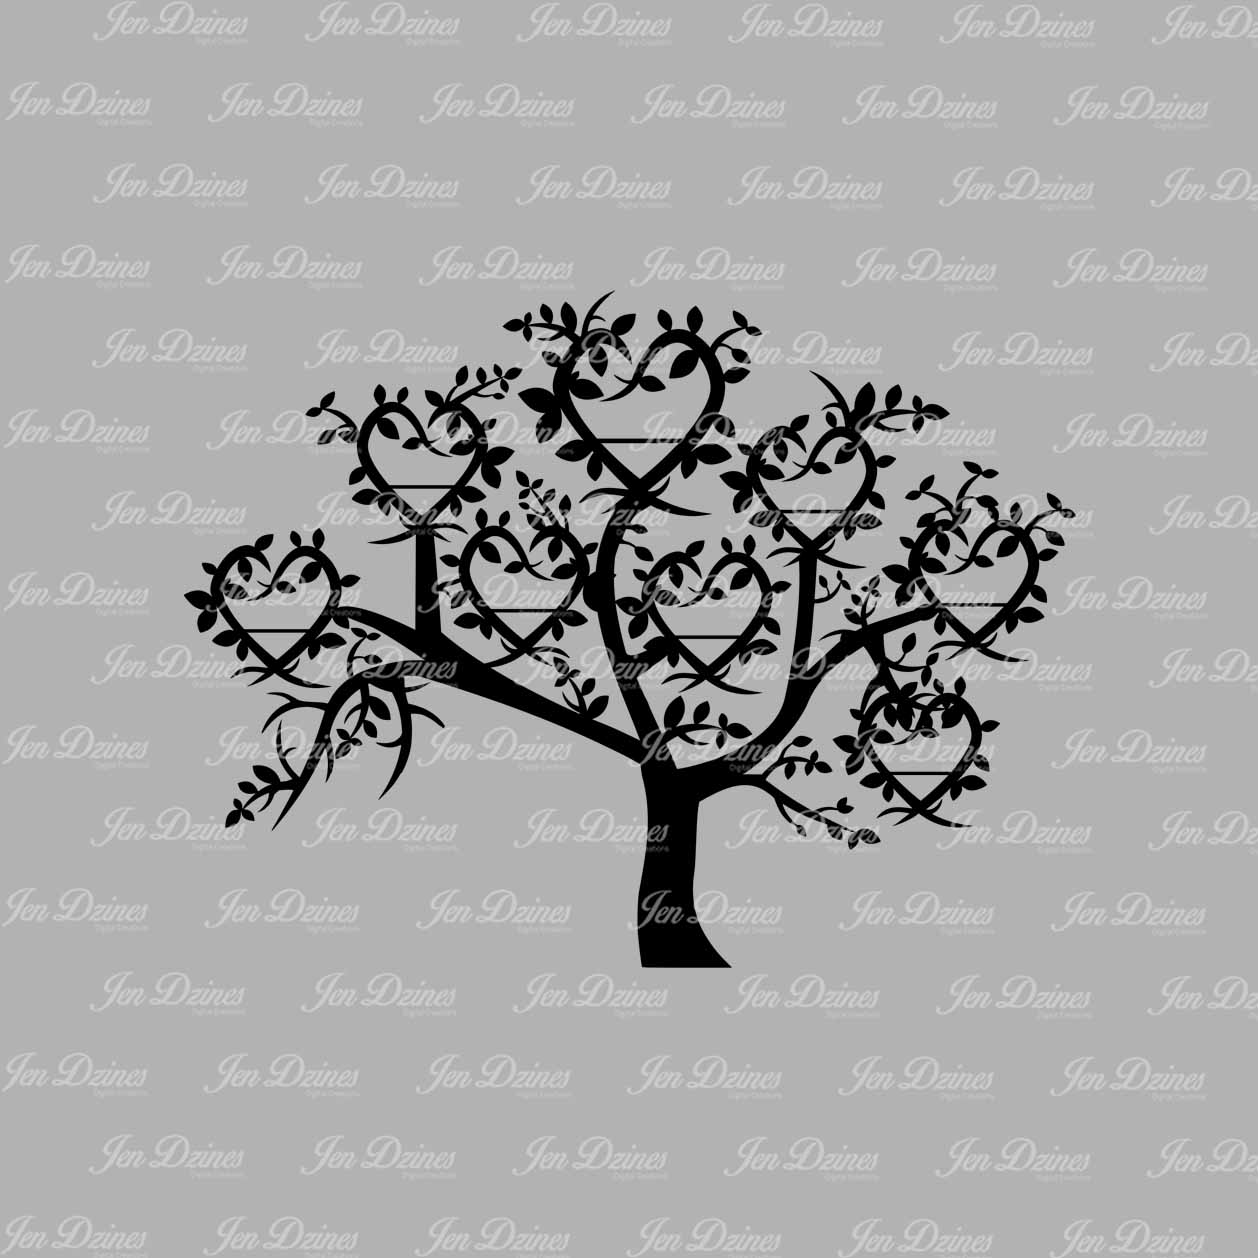 Tree with 8 hearts on it black and white clipart banner royalty free library Tree with 8 hearts on it black and white clipart - ClipartFest banner royalty free library